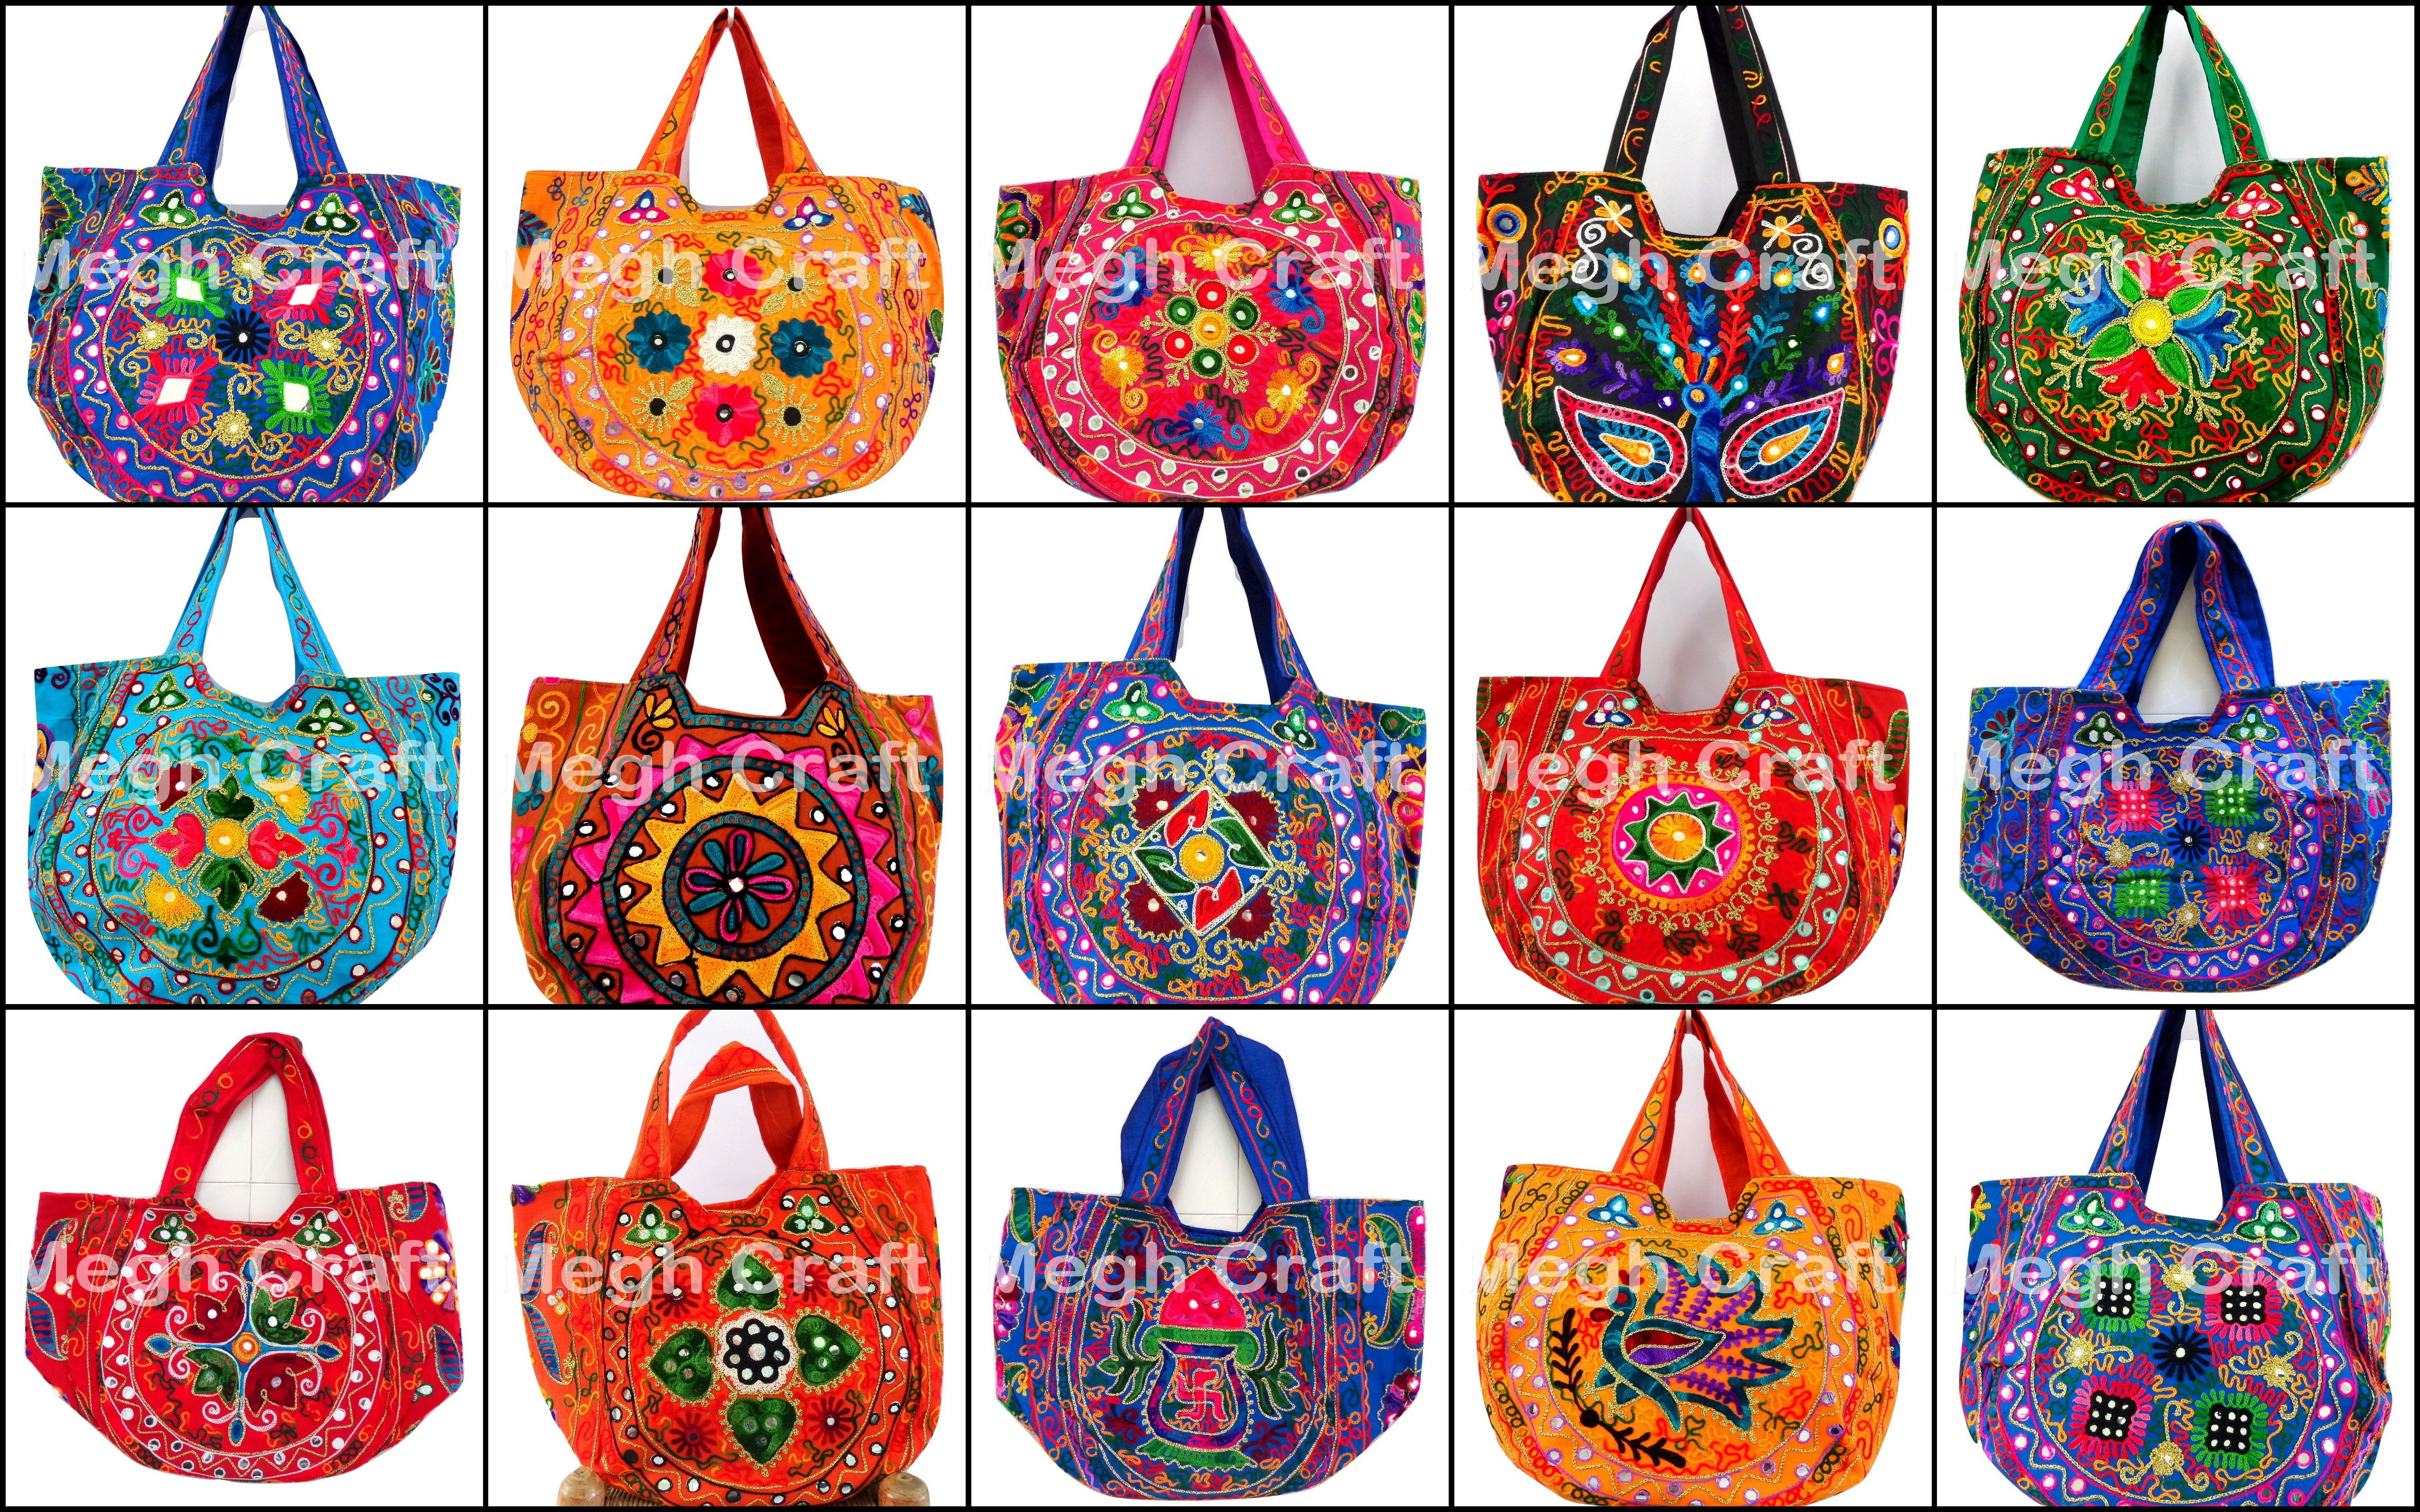 af9d2e5ff1 embroidered lace thread patch aari work handbags - mirror glass ...